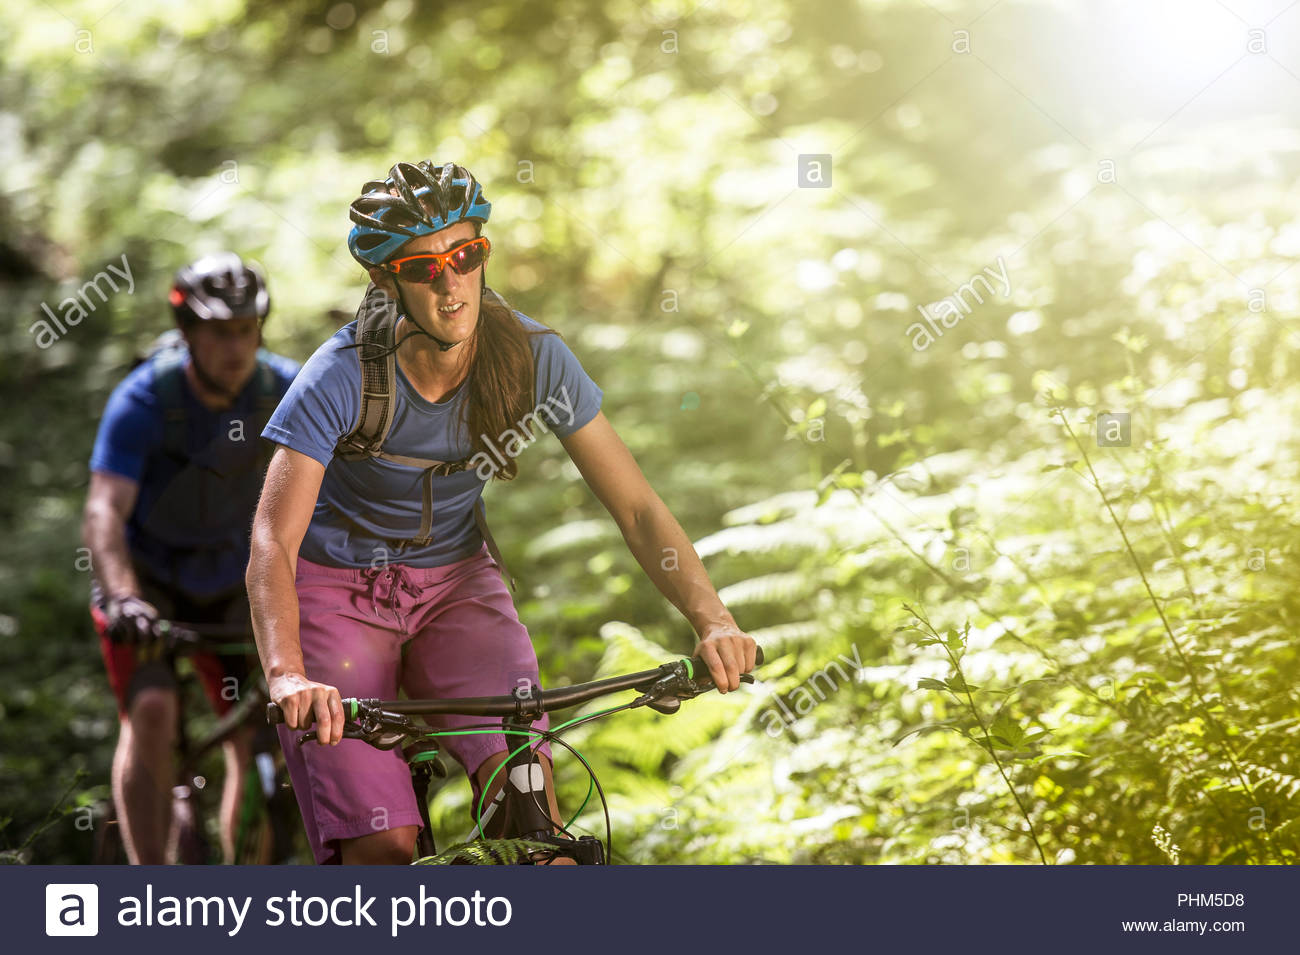 Couple mountain biking in forest - Stock Image